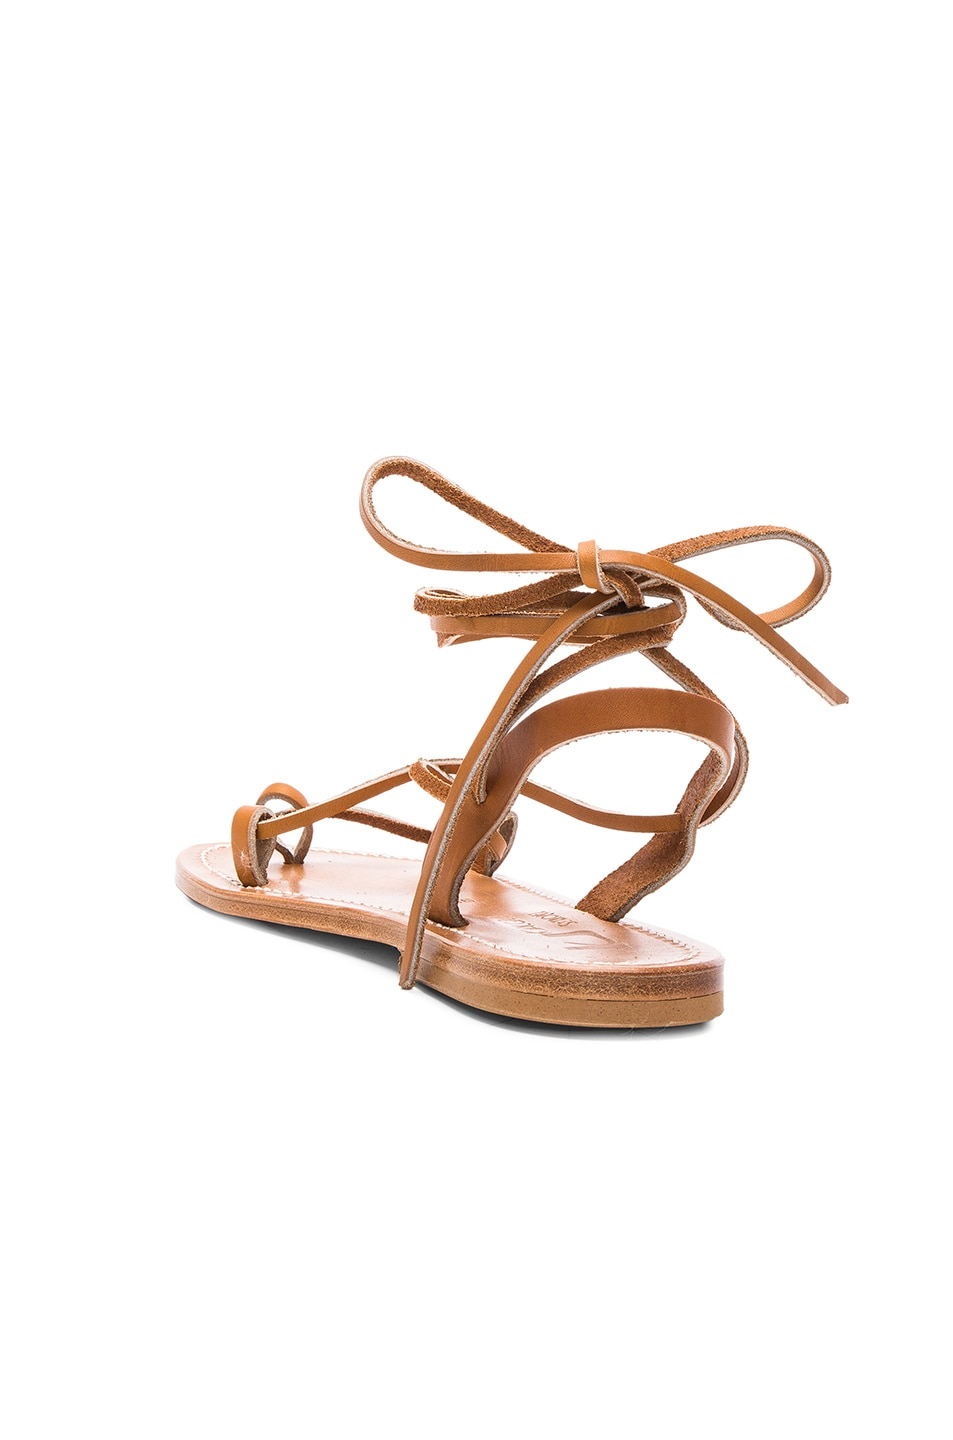 Image 3 of K Jacques Leather Lucile Sandals in Pul Natural